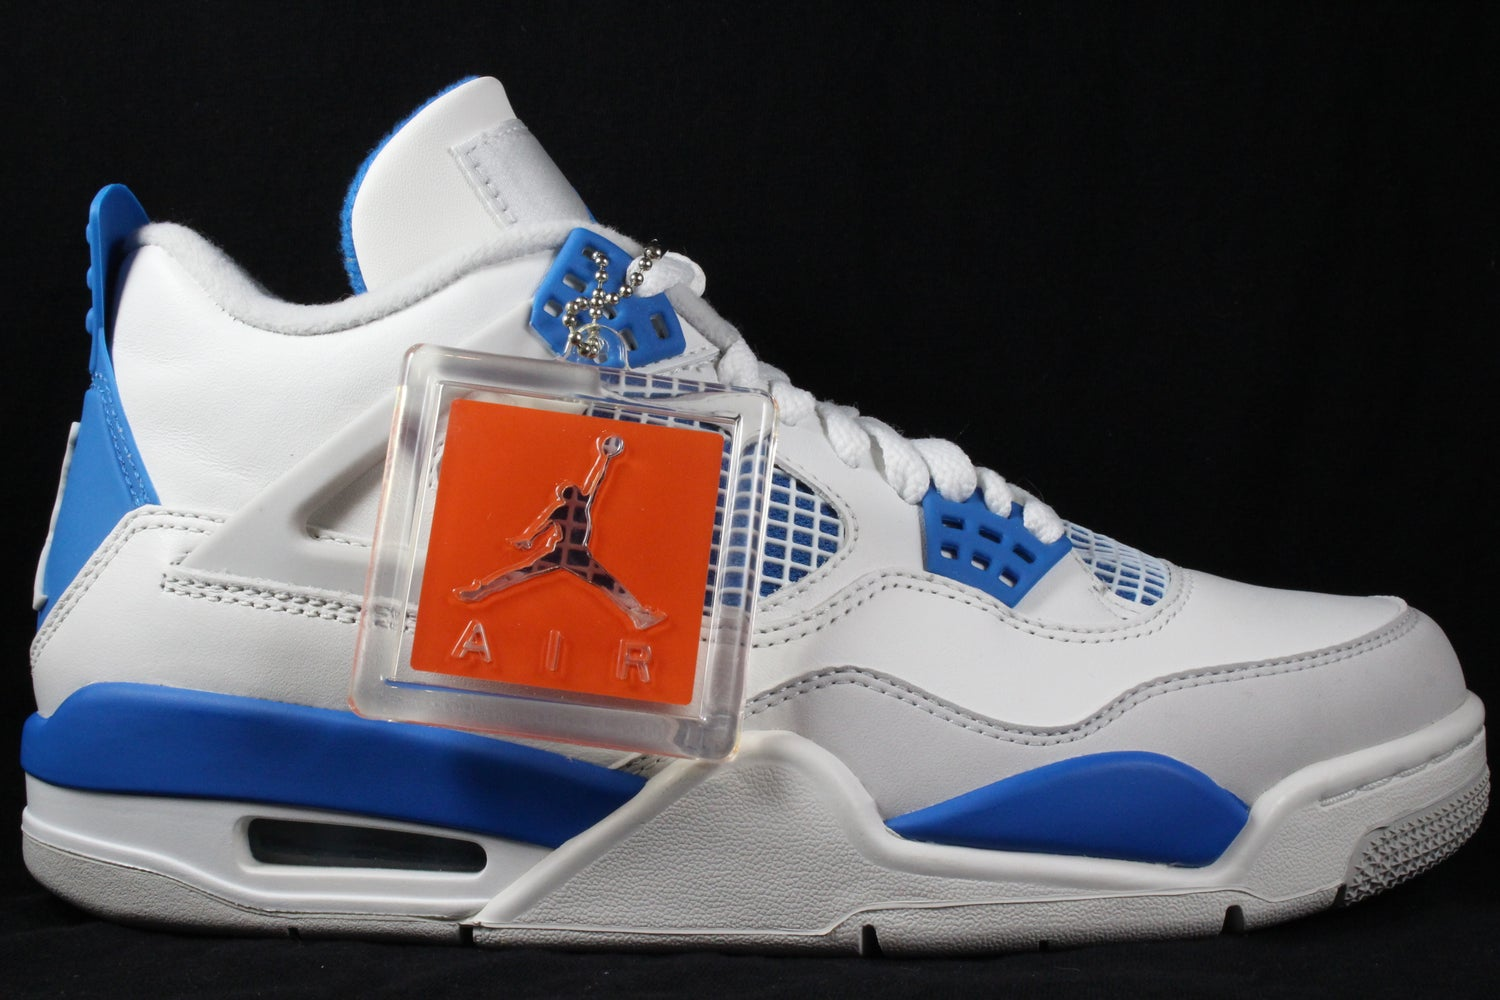 new concept 11673 ace55 Image of Nike Air Jordan 4 Retro Military Blue size 7